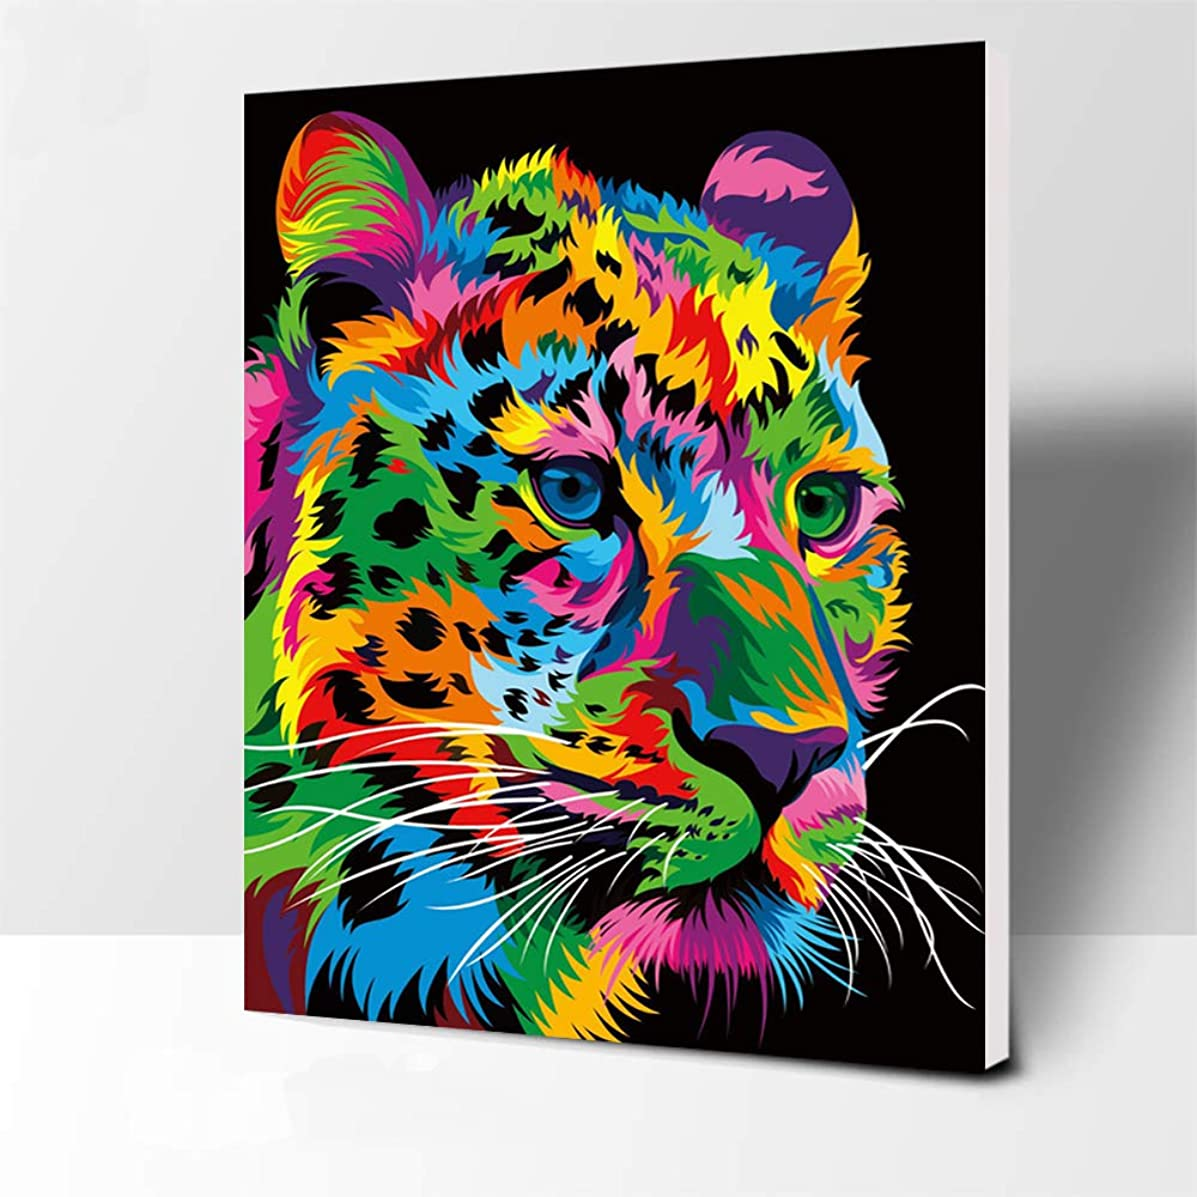 iFymei DIY Oil Painting Kit , Paint by Numbers for Adults & Kids & Beginner , 16 x 20 inch Canvas & Acrylic Paints - Colorful Leopard ( Wooden Framed )